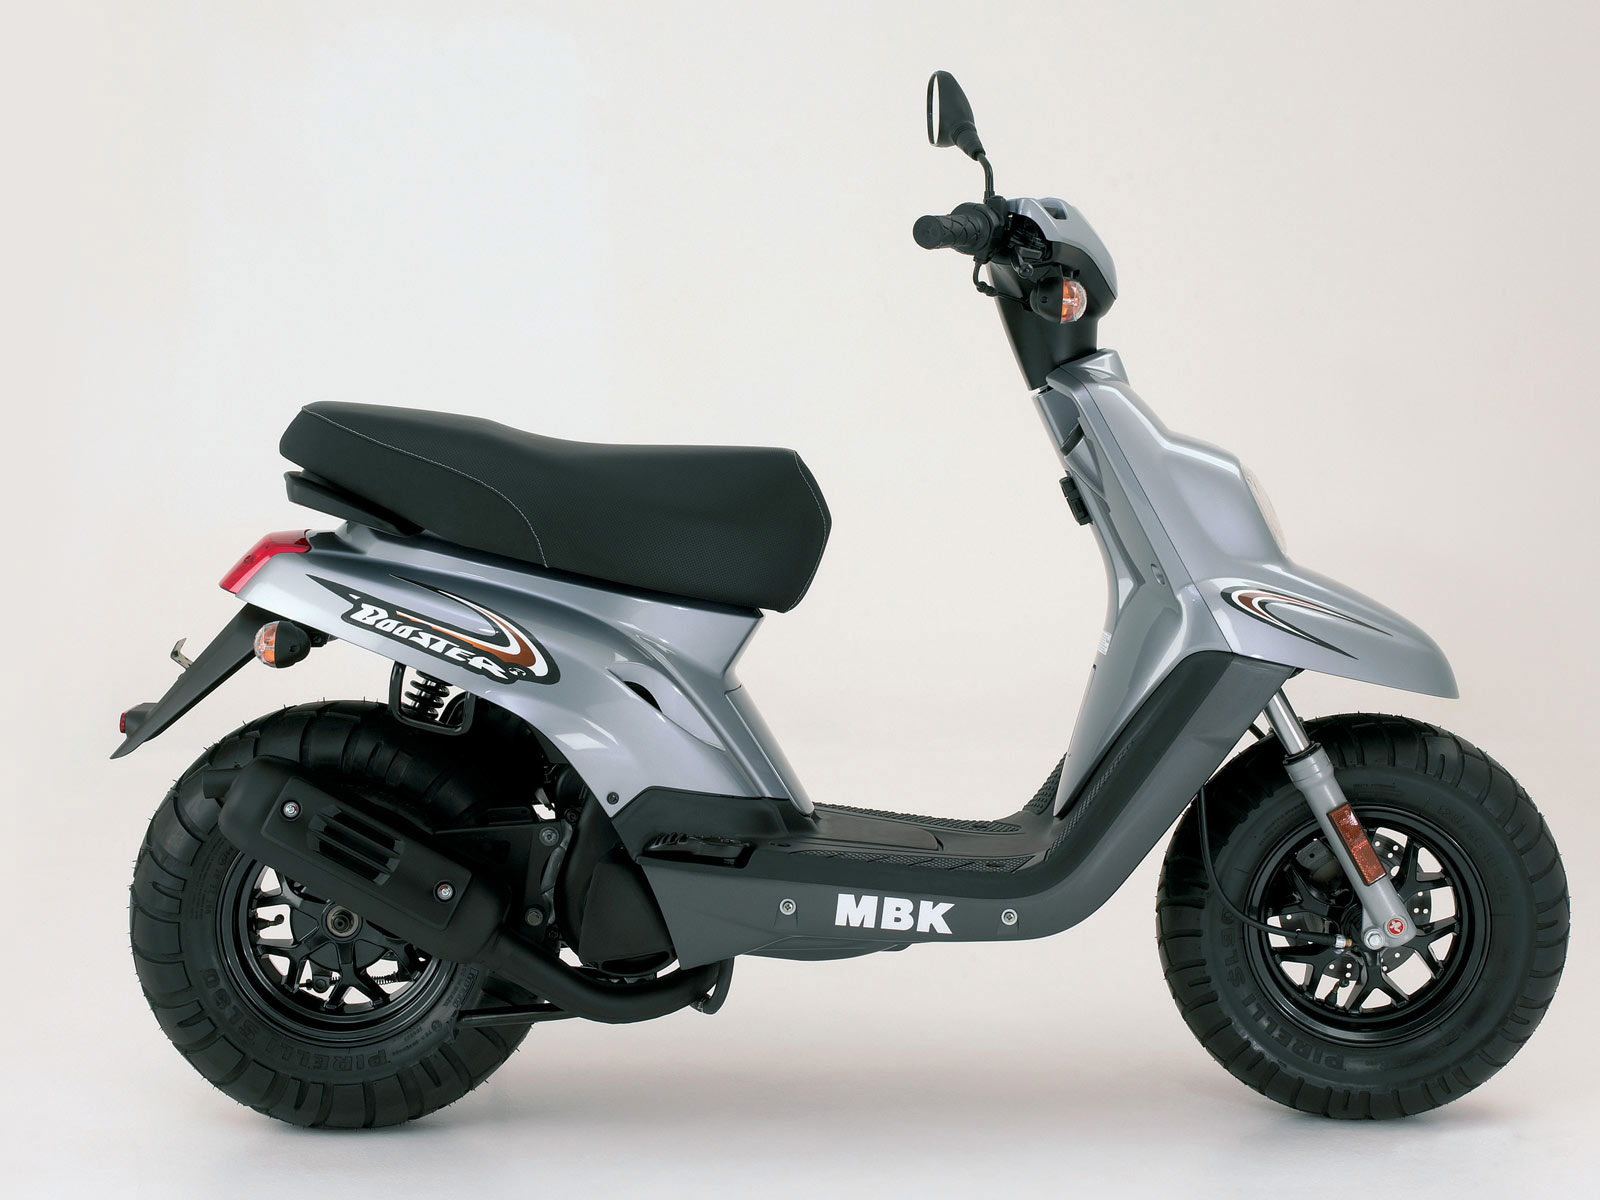 Mbk Scooter Pictures 2006 Booster Specifications